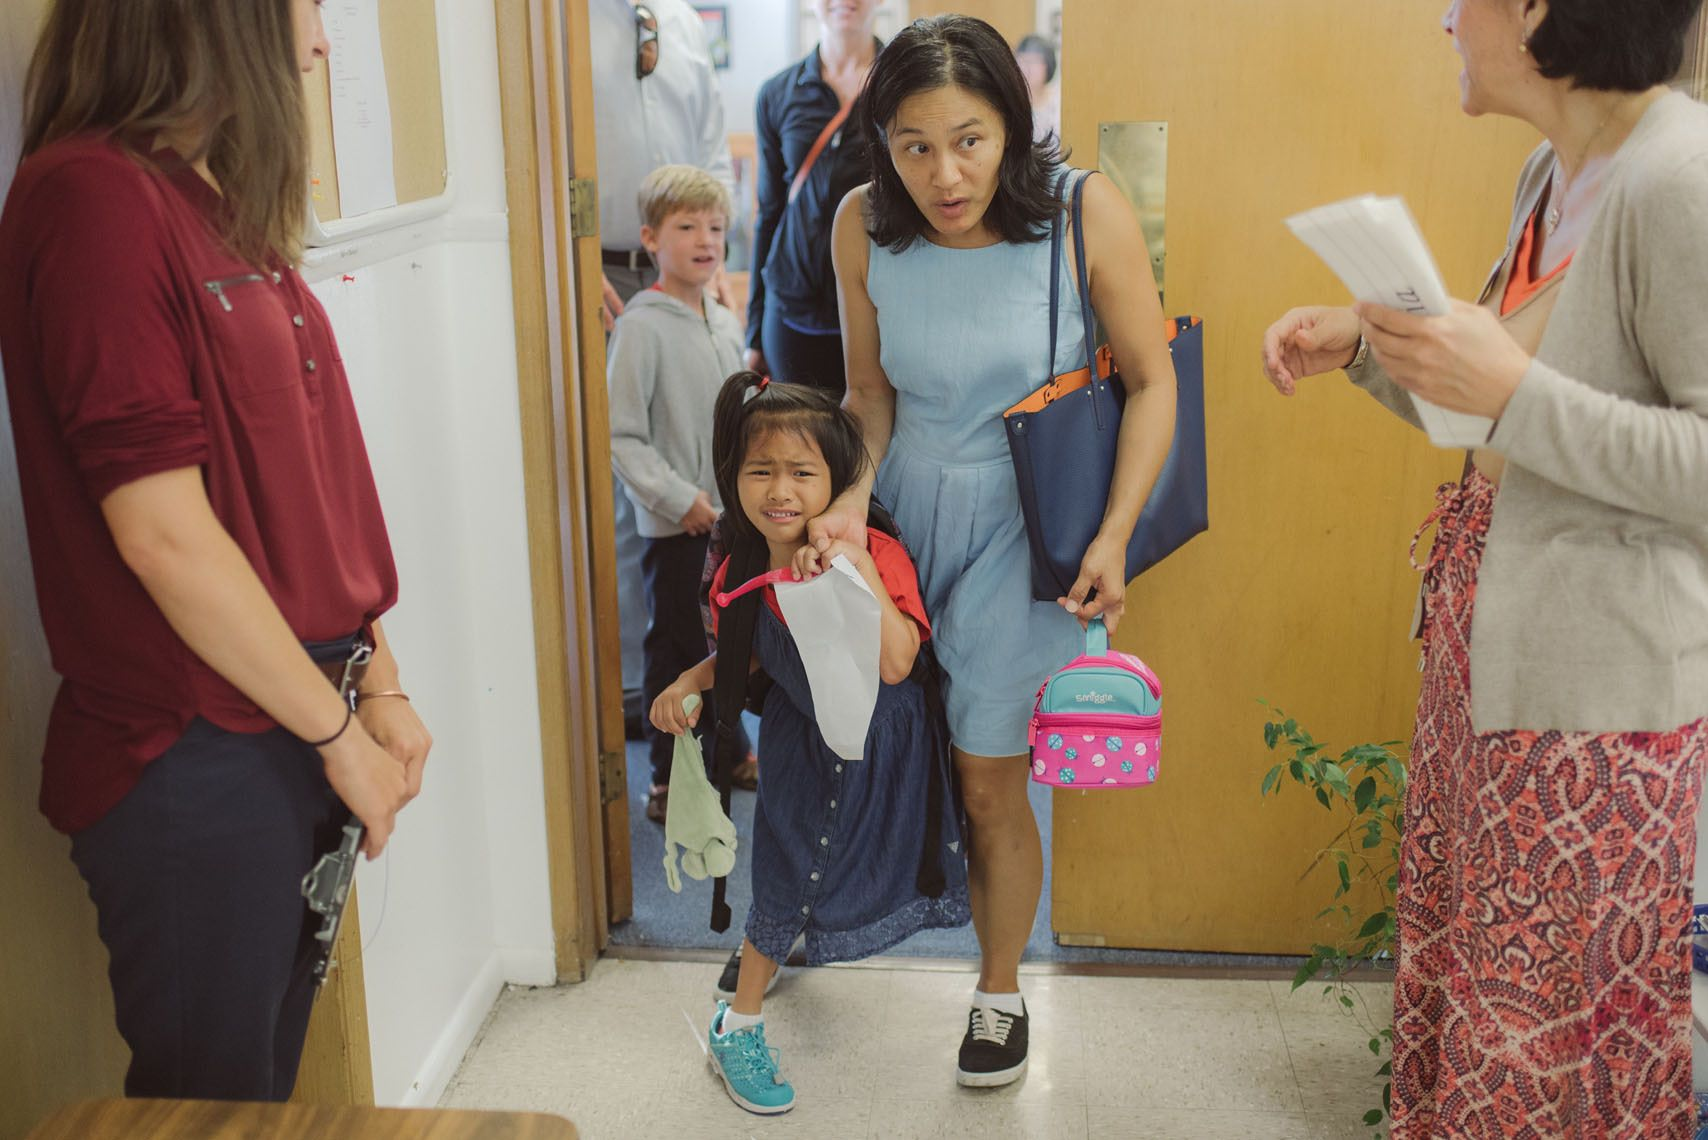 20150831-083051-Family-FirstDayofSchool-MauriceRamirezPhoto